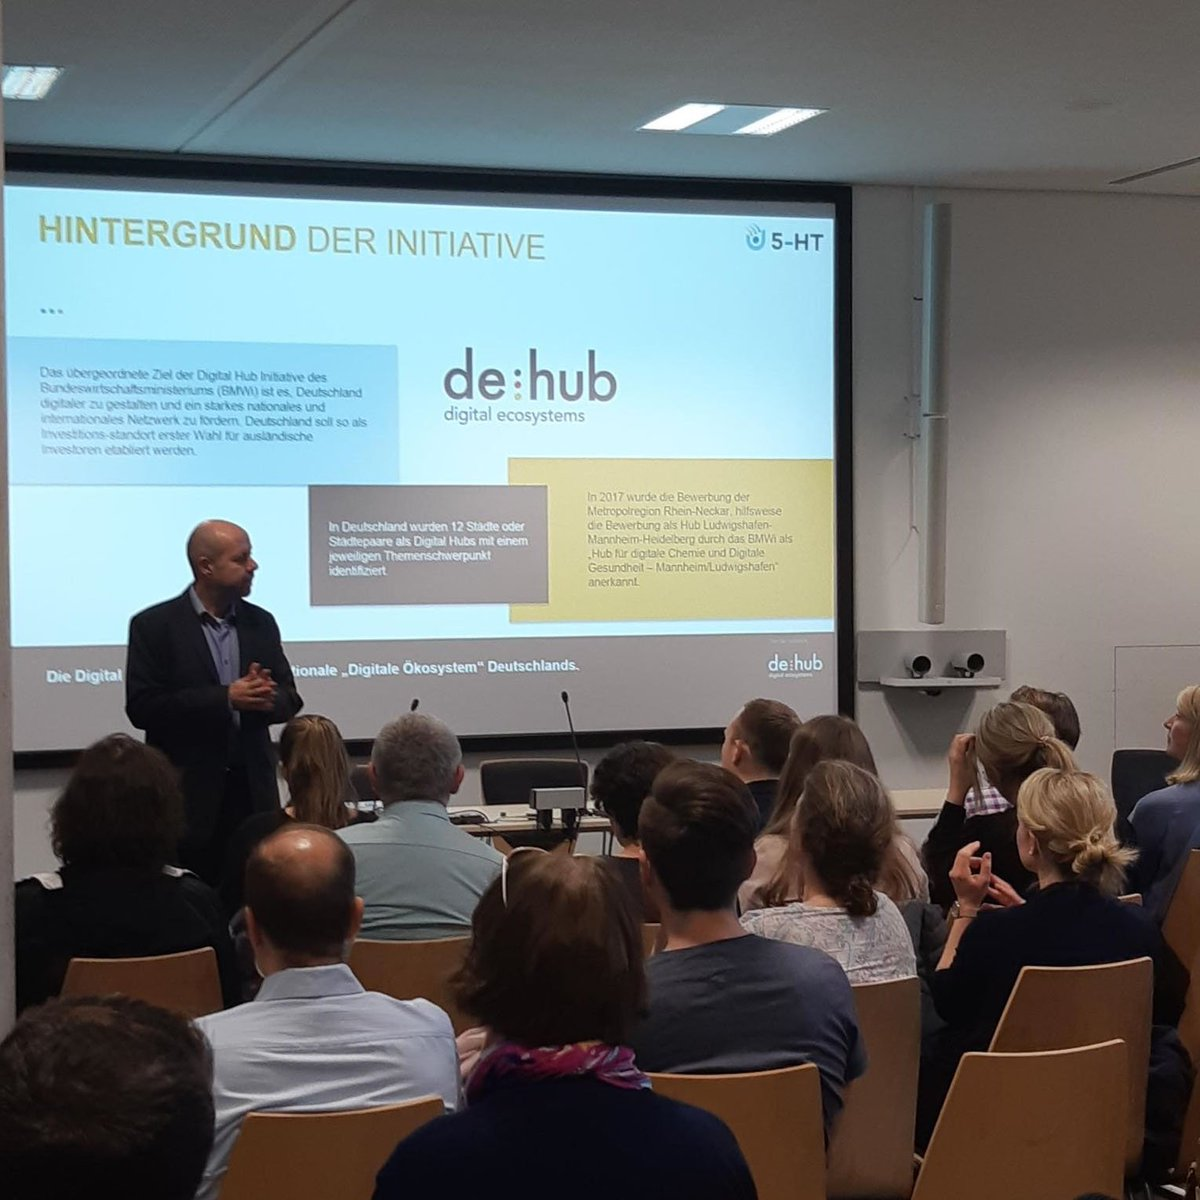 Dr. Frank Funke presenting the #deHubChemHealth during the #BASF Digital Road Trip. BASF employees learnt about the program #5HT_Xlinker for #Startups in #digitalchemistry and #digitalhealth and other initiatives to boost #digital #Innovation. #5HT_ontour #5HT_Xlinker https://t.co/3uEO9A2yKW